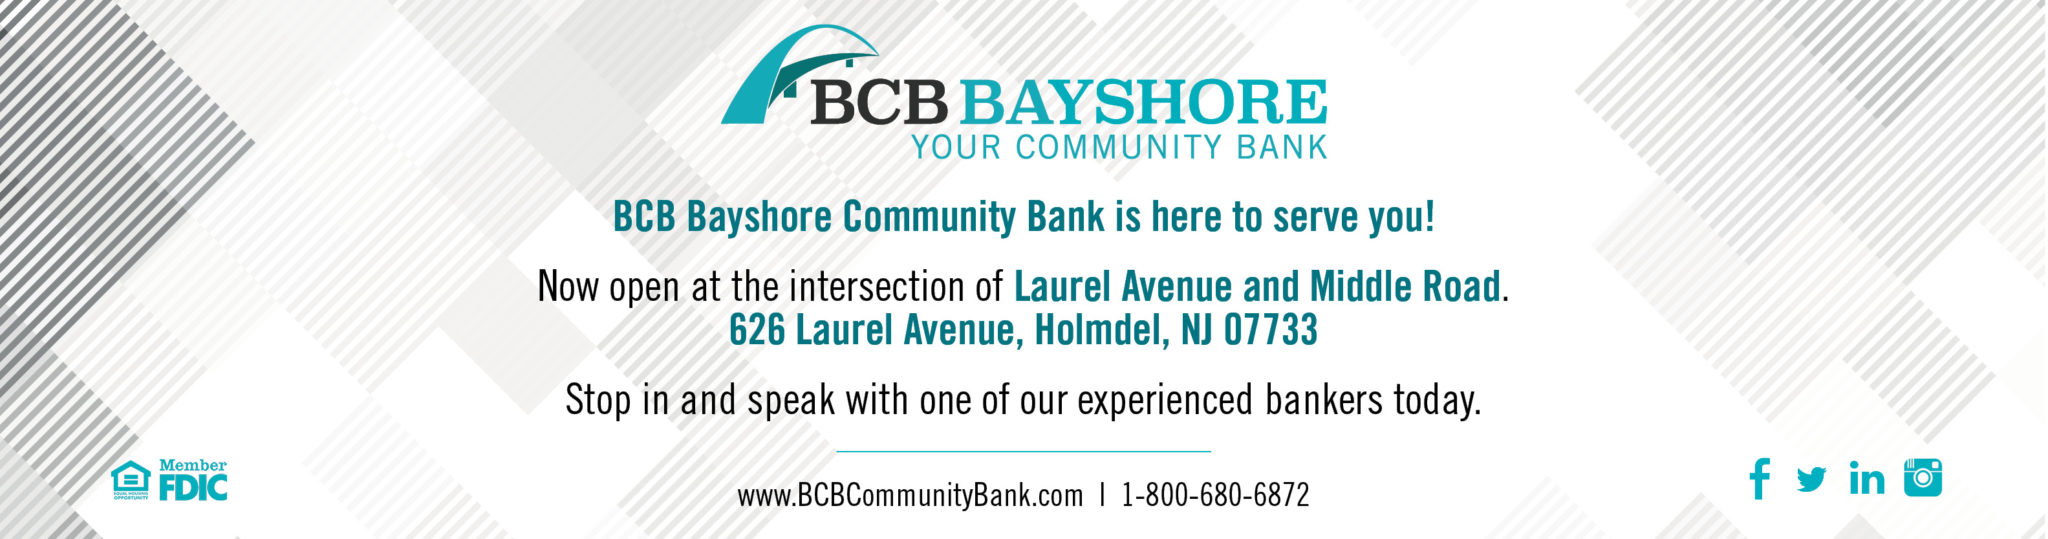 Bayshore Community Bank